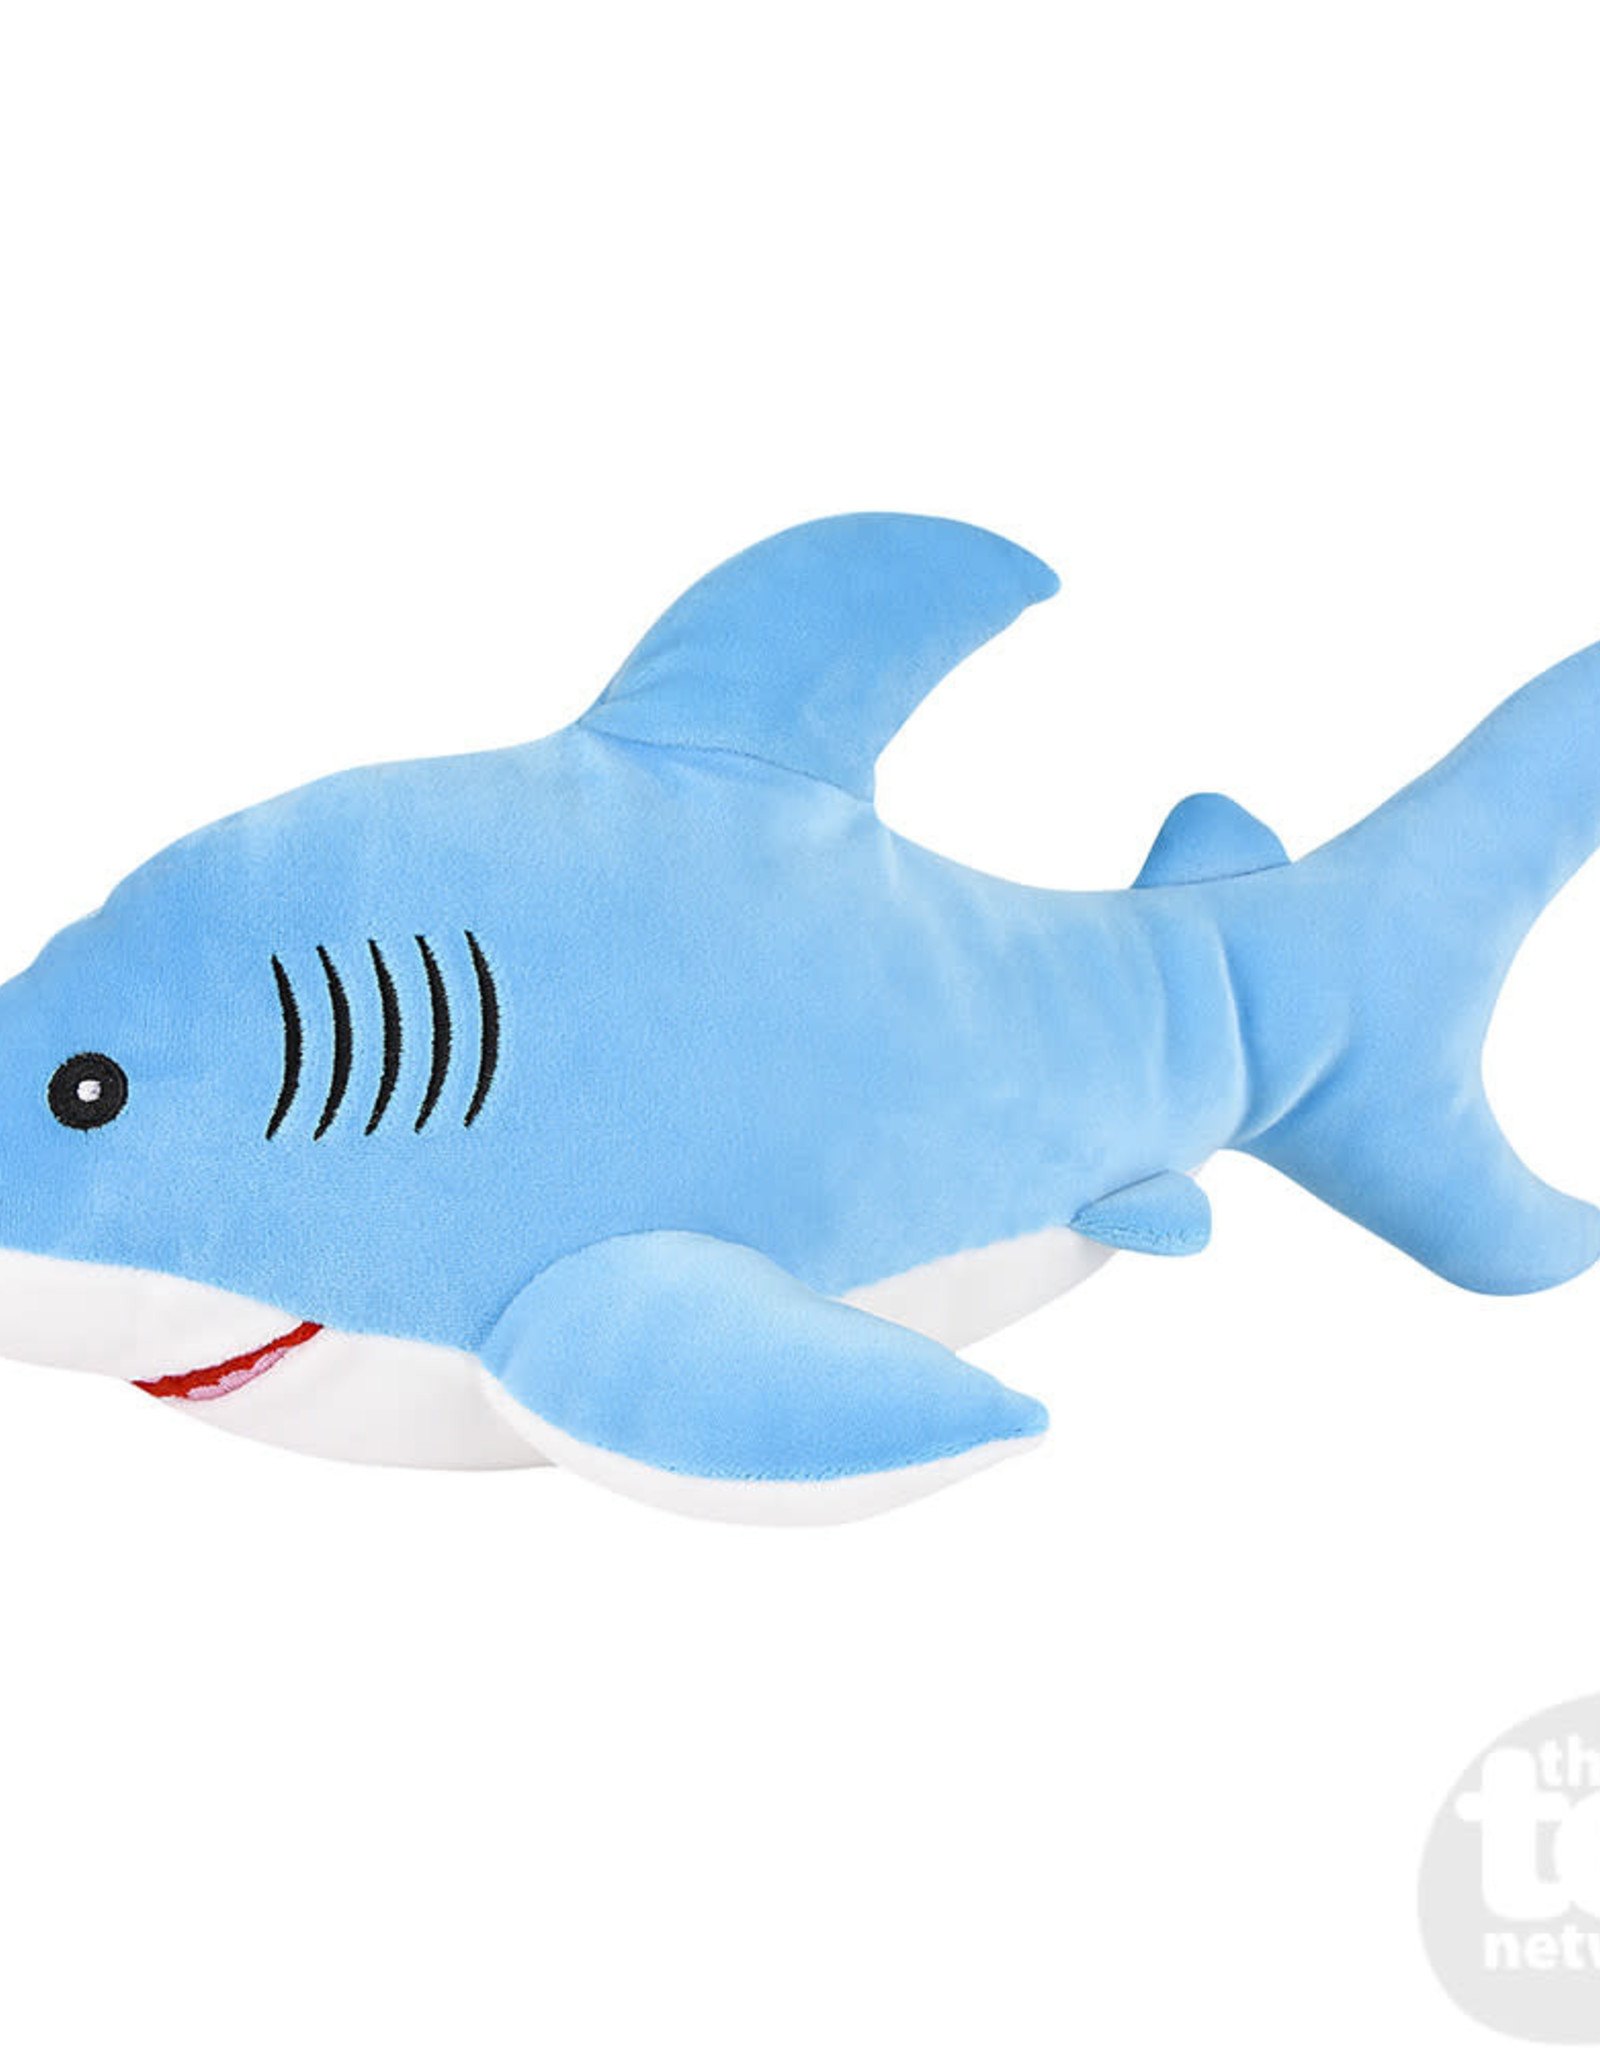 The Toy Network Shark Super Soft Blue